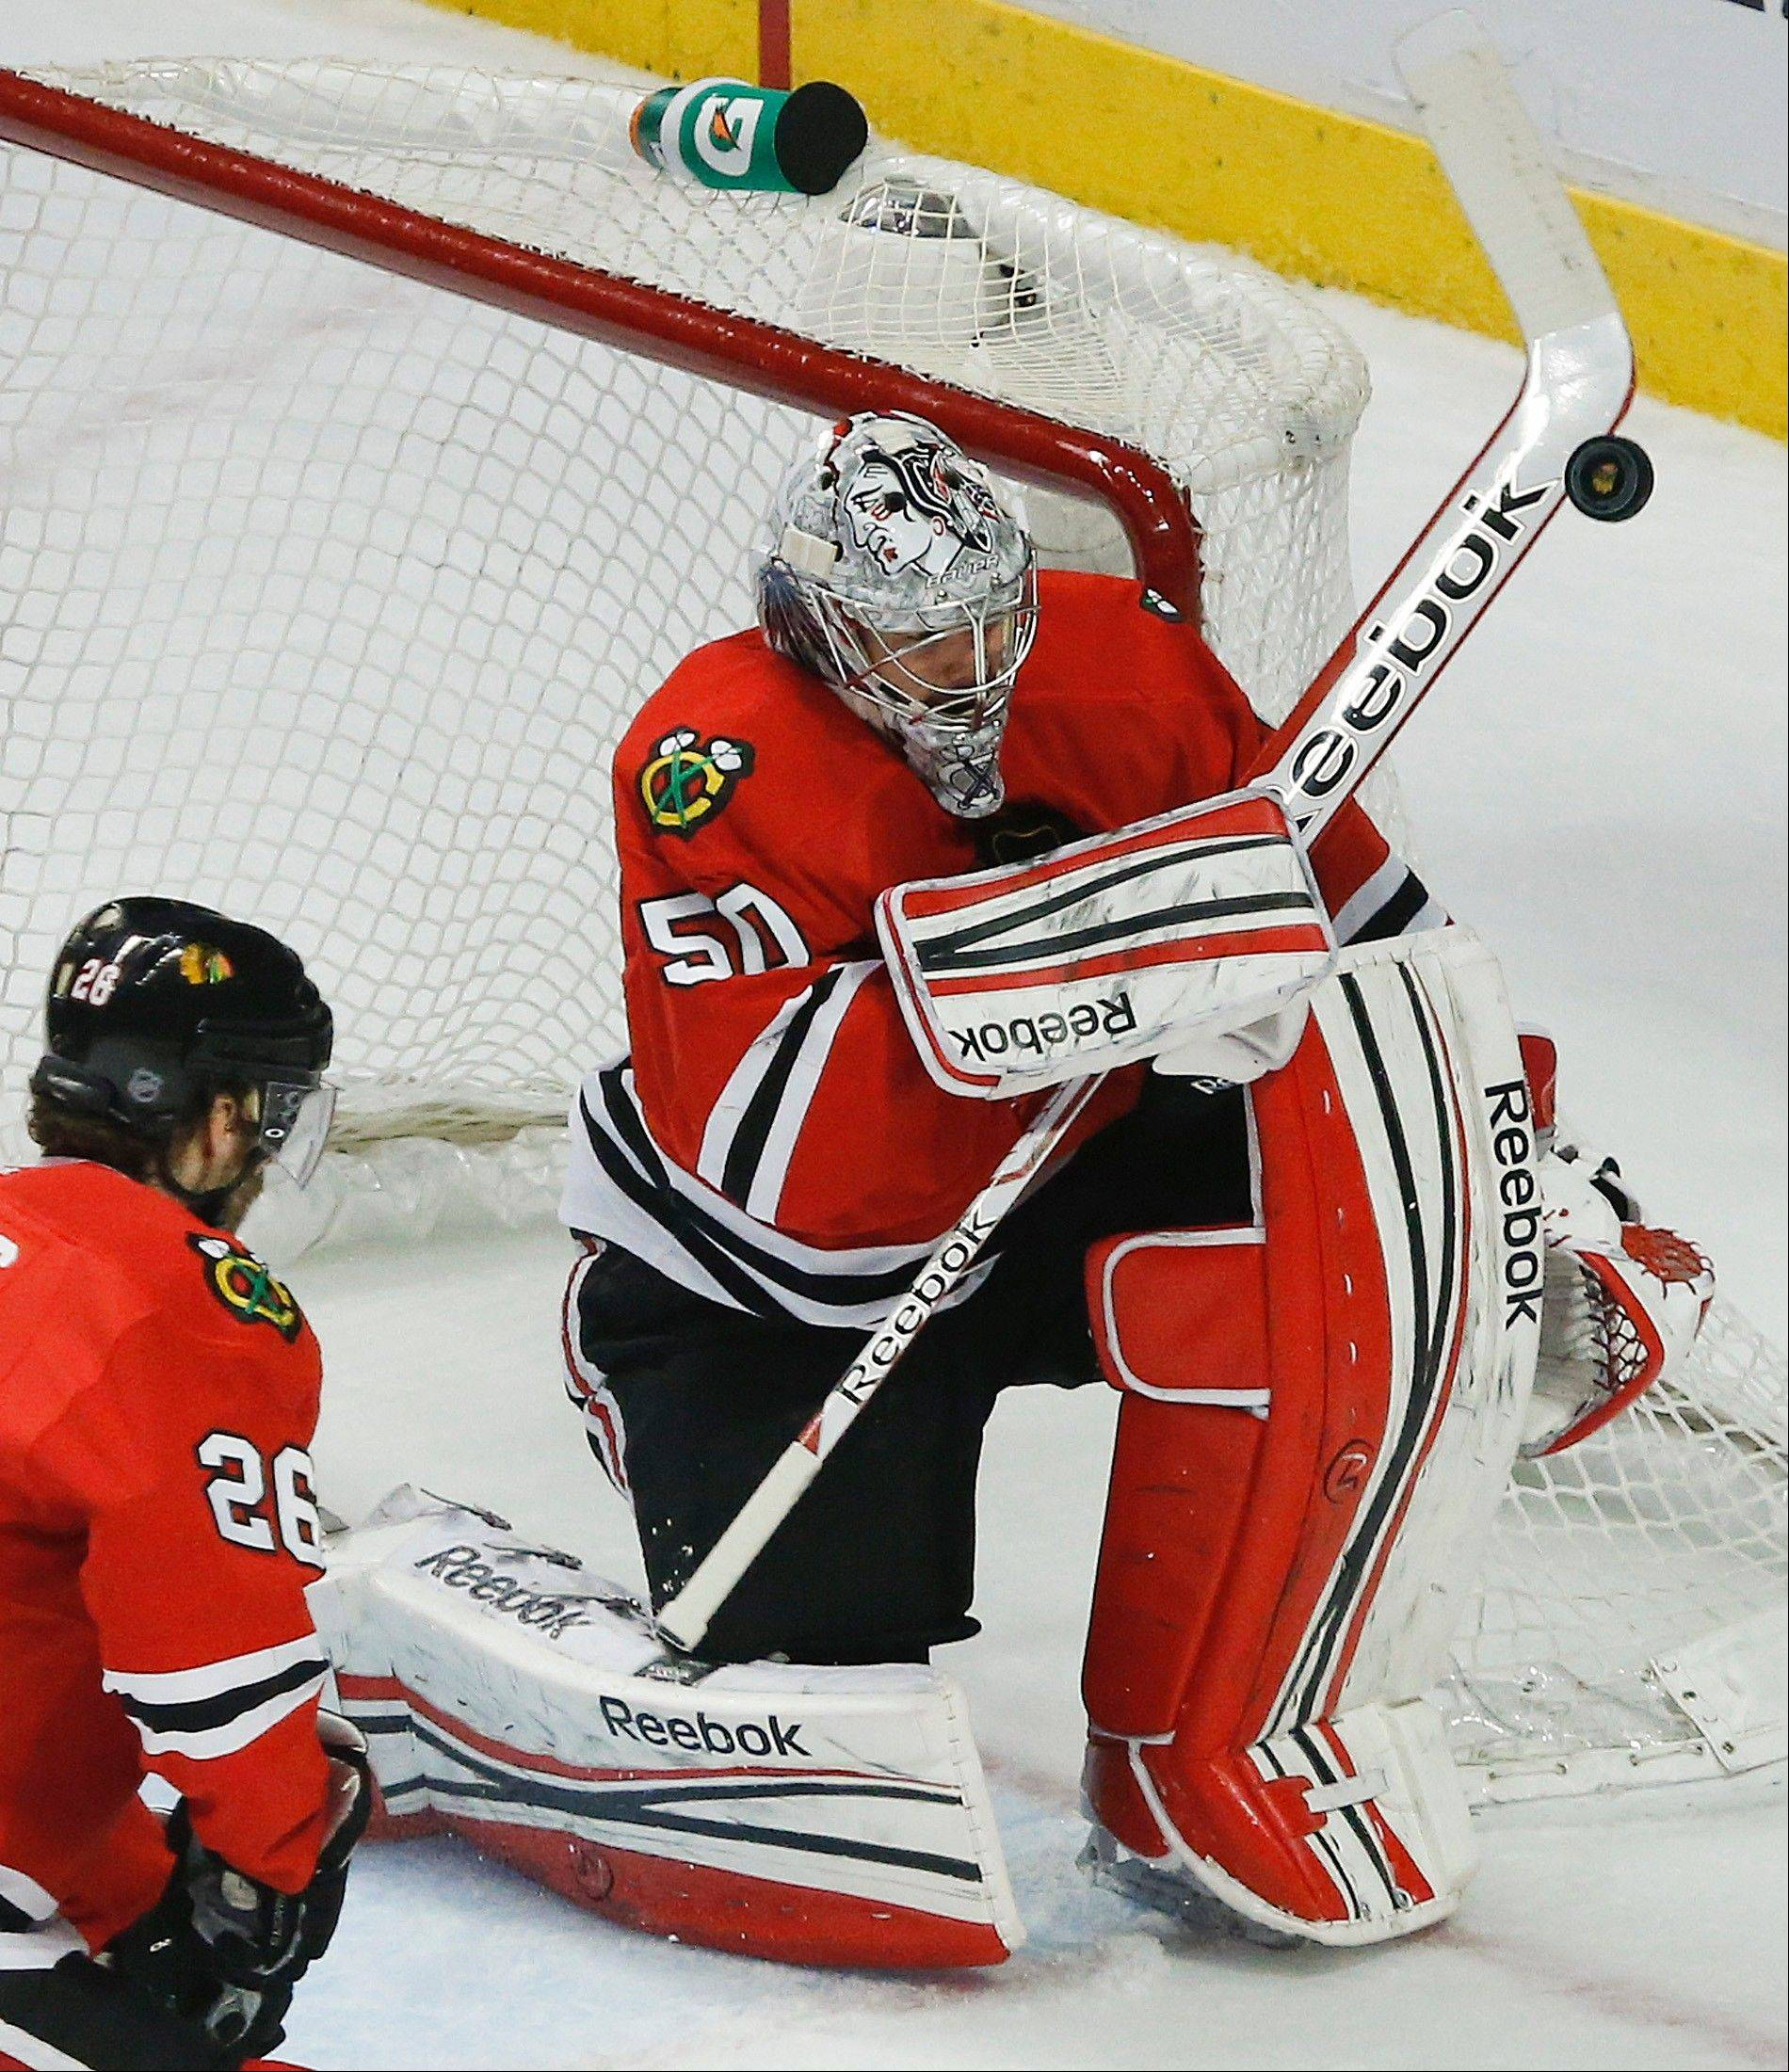 Chicago Blackhawks goalie Corey Crawford (50) blocks a shot by the Los Angeles Kings during the first period in Game 2 of the NHL hockey Stanley Cup Western Conference finals Sunday, June 2, 2013 in Chicago.